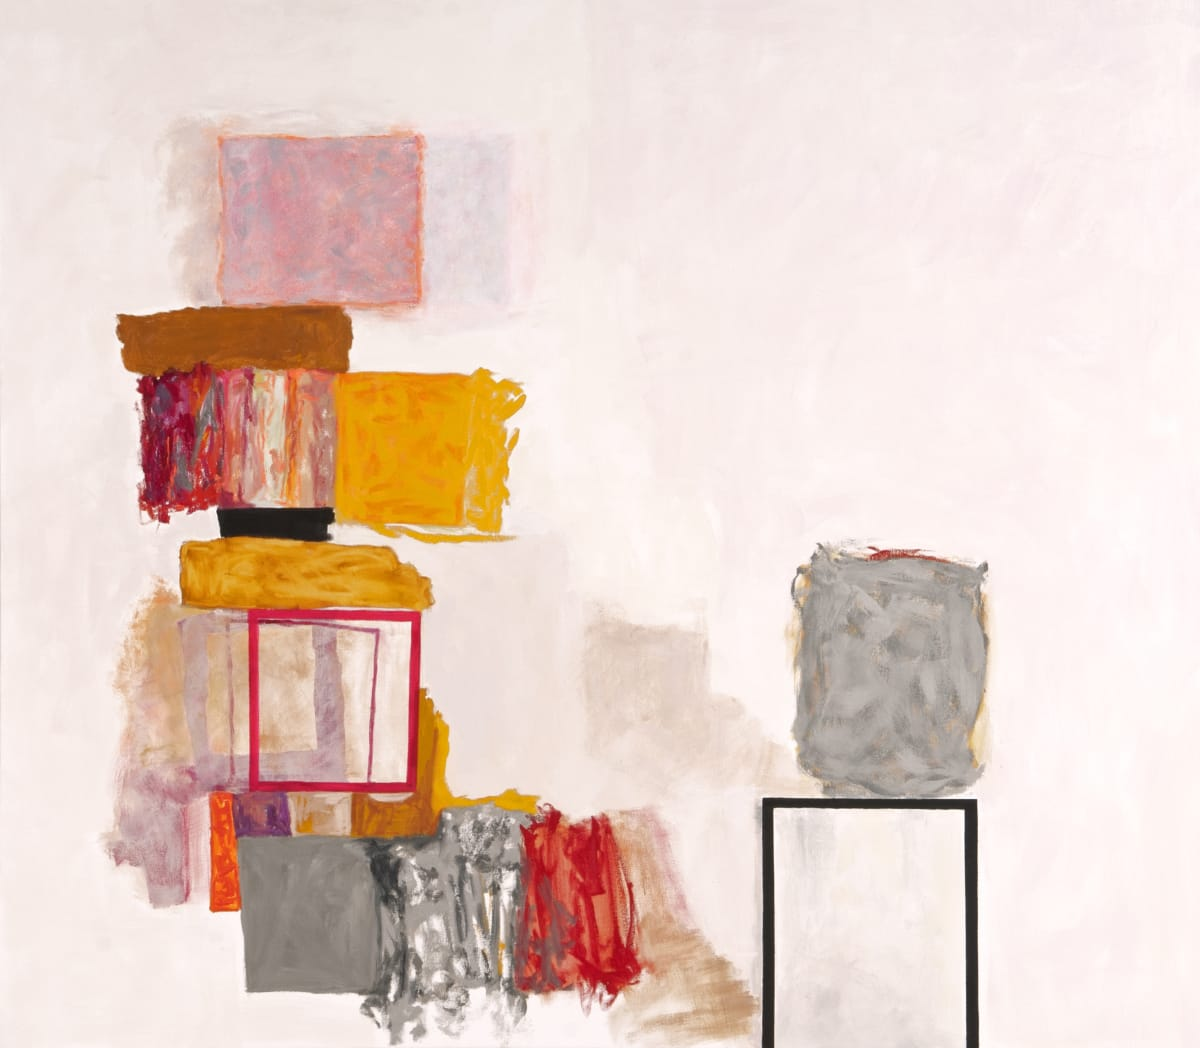 """Rocio Rodriguez's """"Bits and Pieces"""" oil painting on canvas in shades of pink, red, yellow, gray and brown. The painting depicts squares spread throughout the canvas. The title may be referring to what the squares are representing making it abstract."""